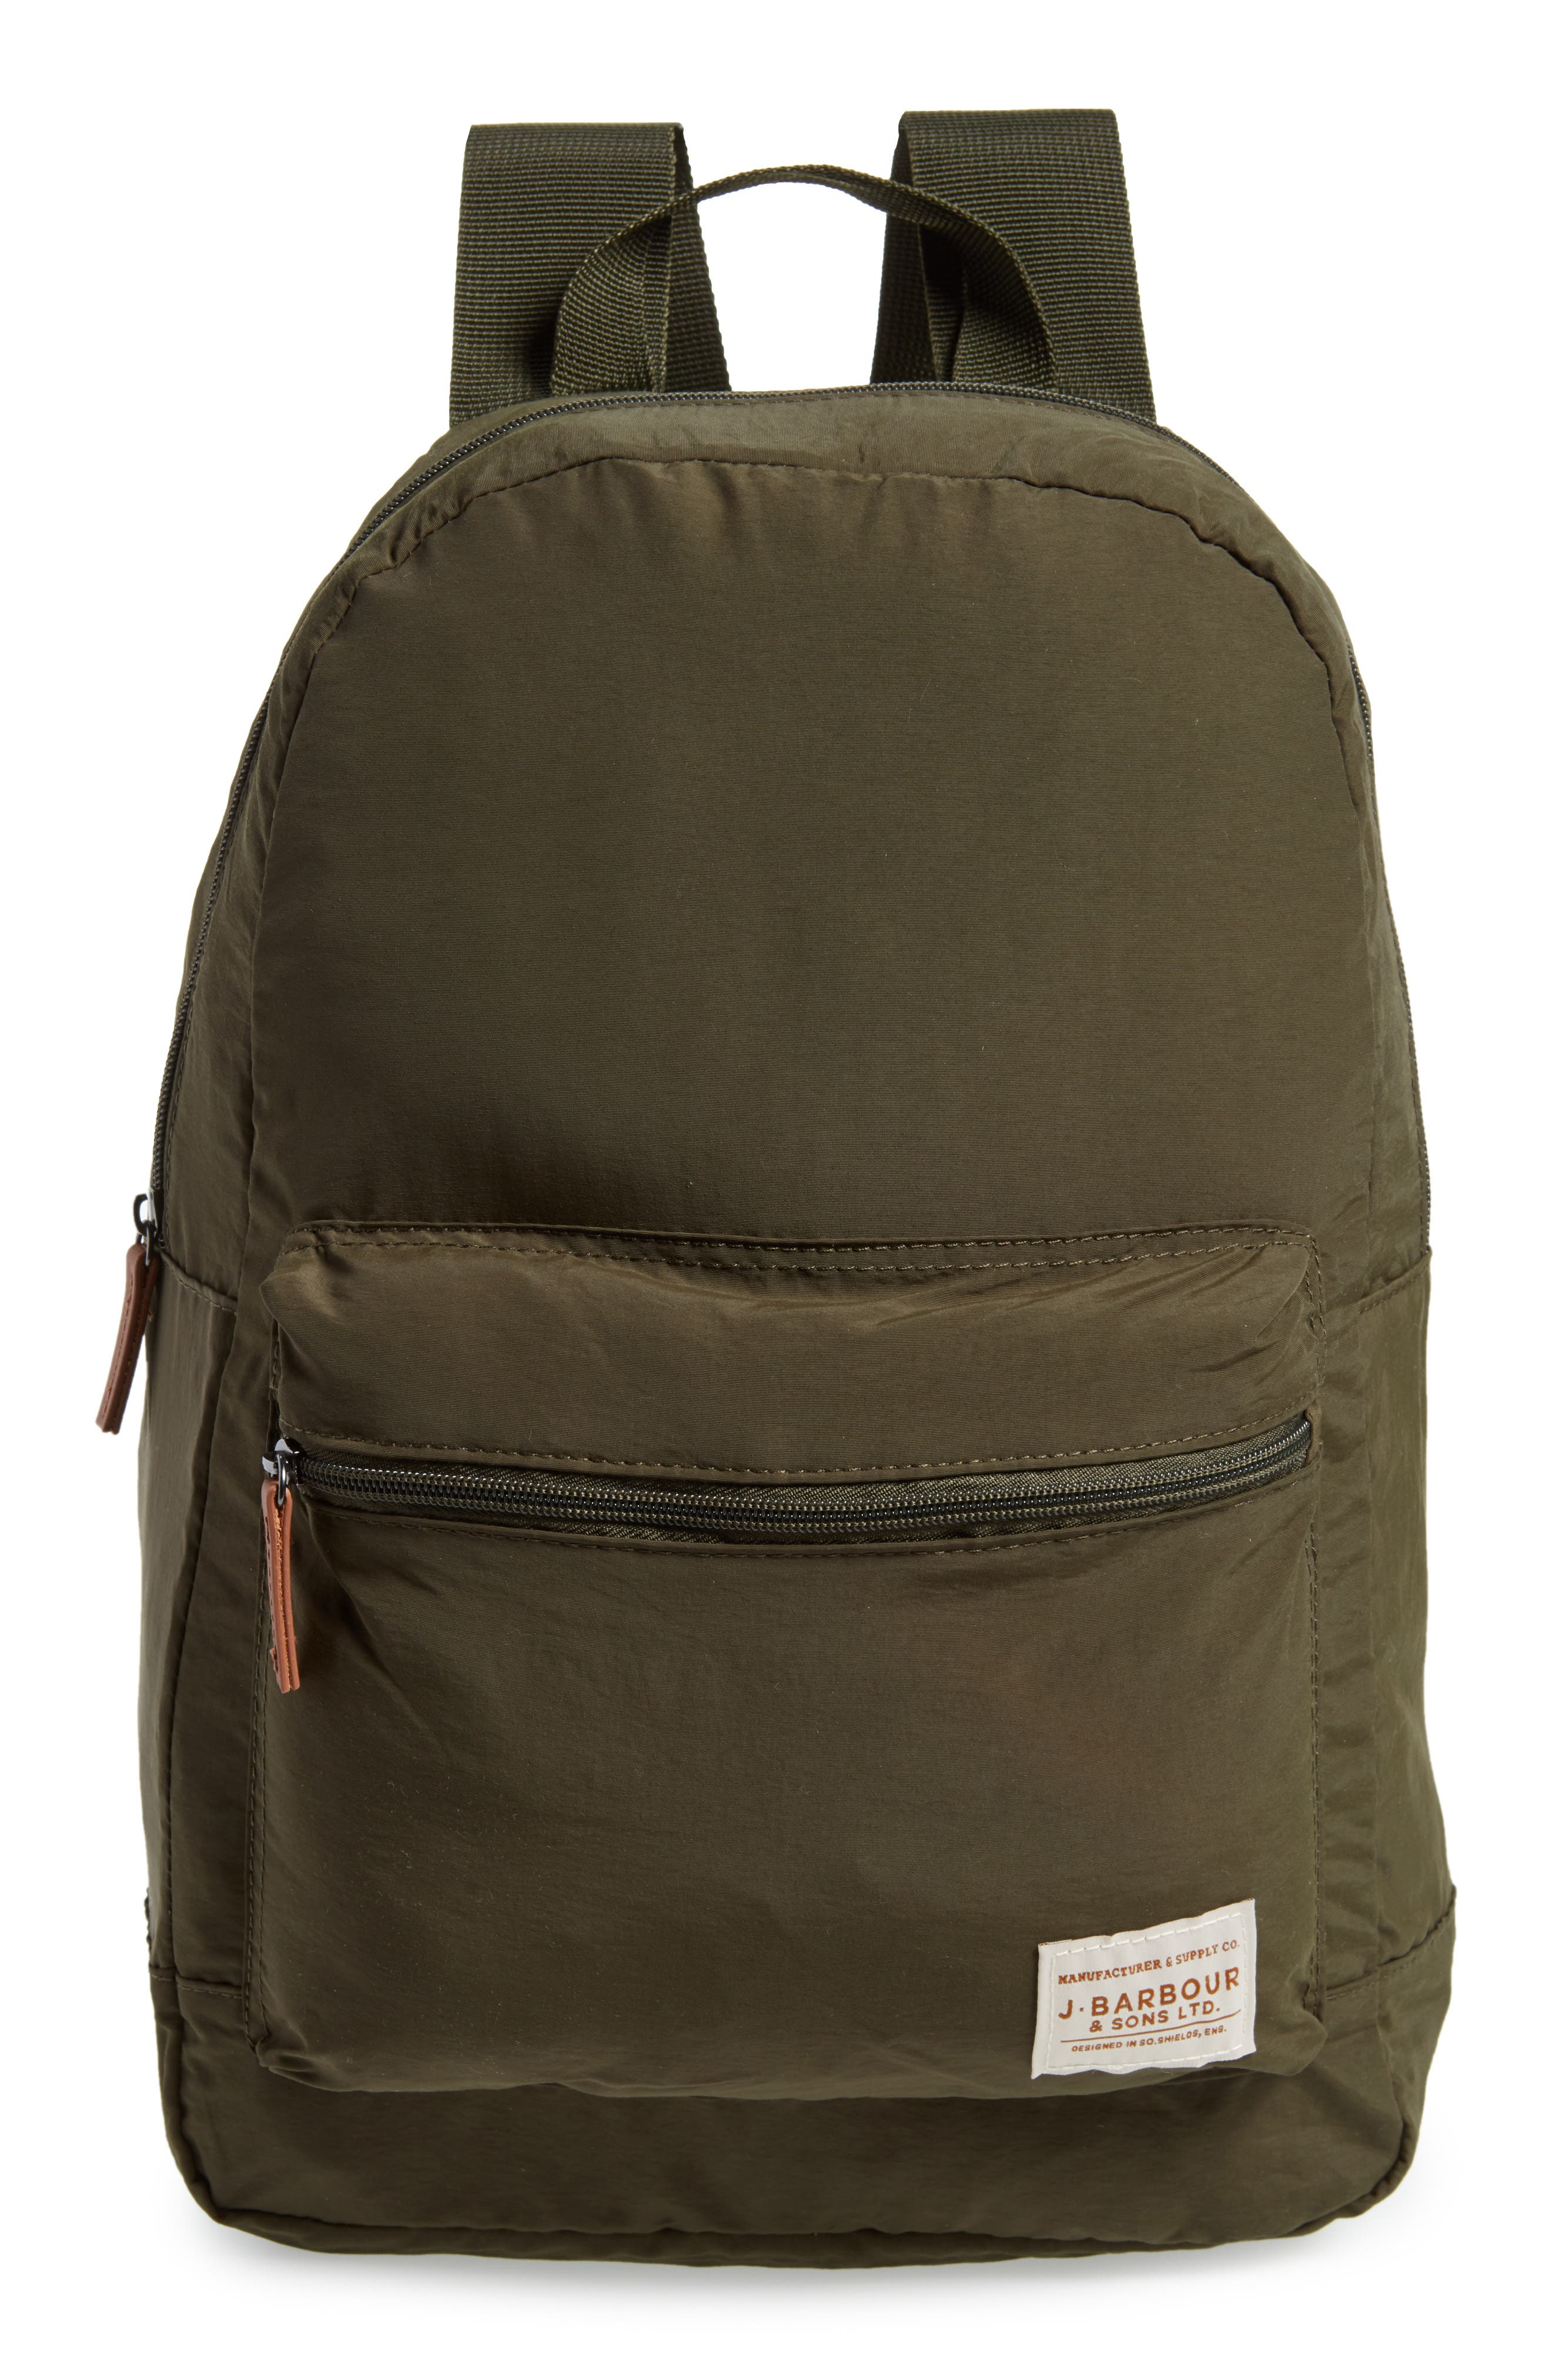 BARBOUR Beauly Packable Backpack, Main, color, DARK GREEN